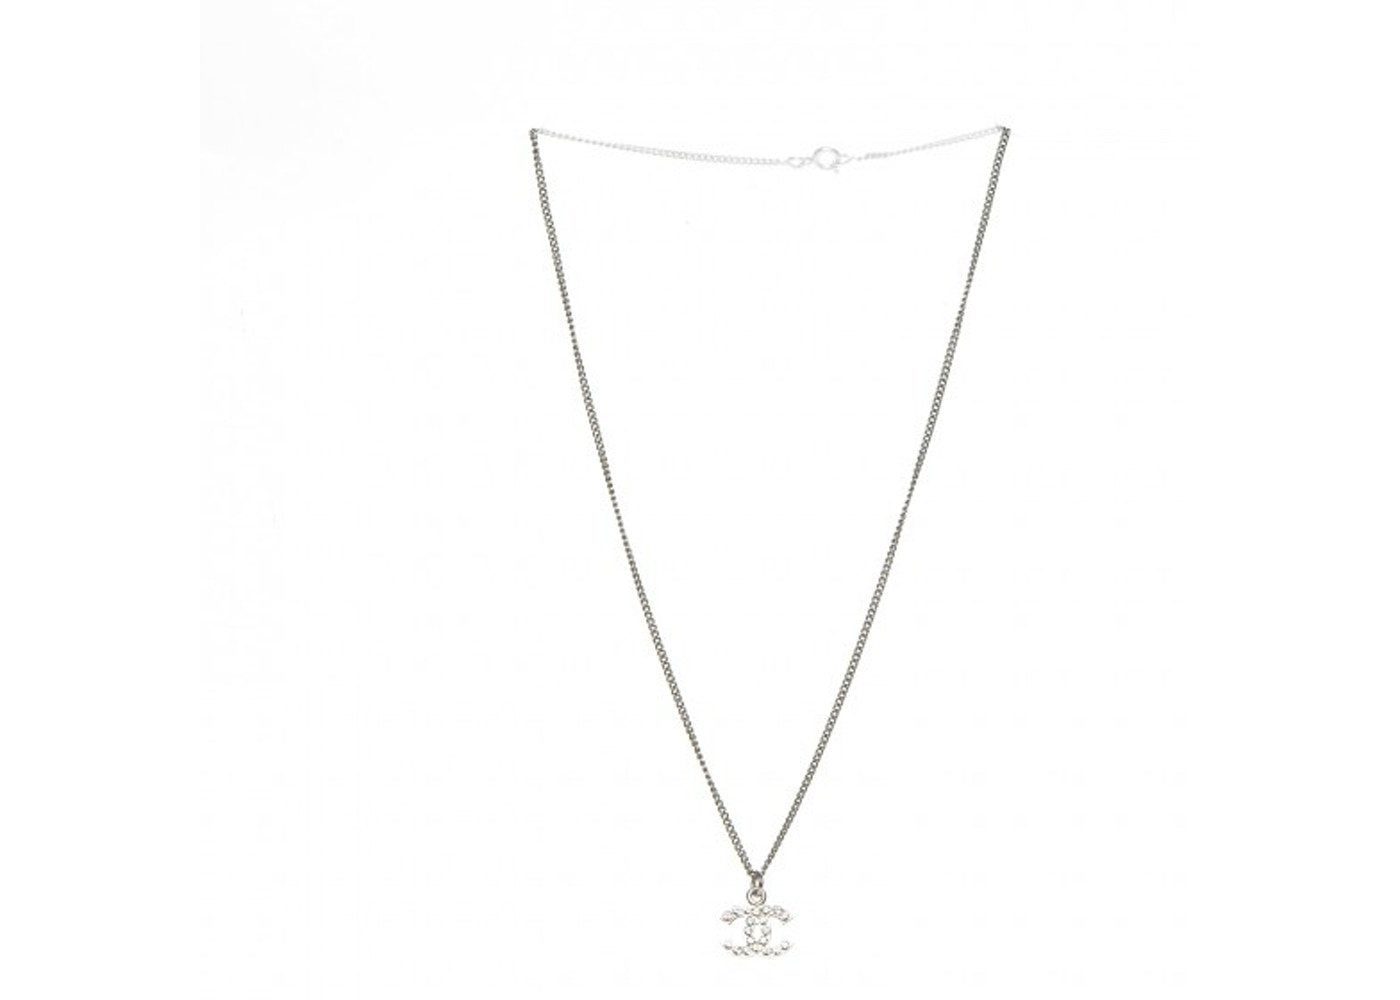 coupon codes picked up size 40 Chanel Timeless CC Necklace Crystal